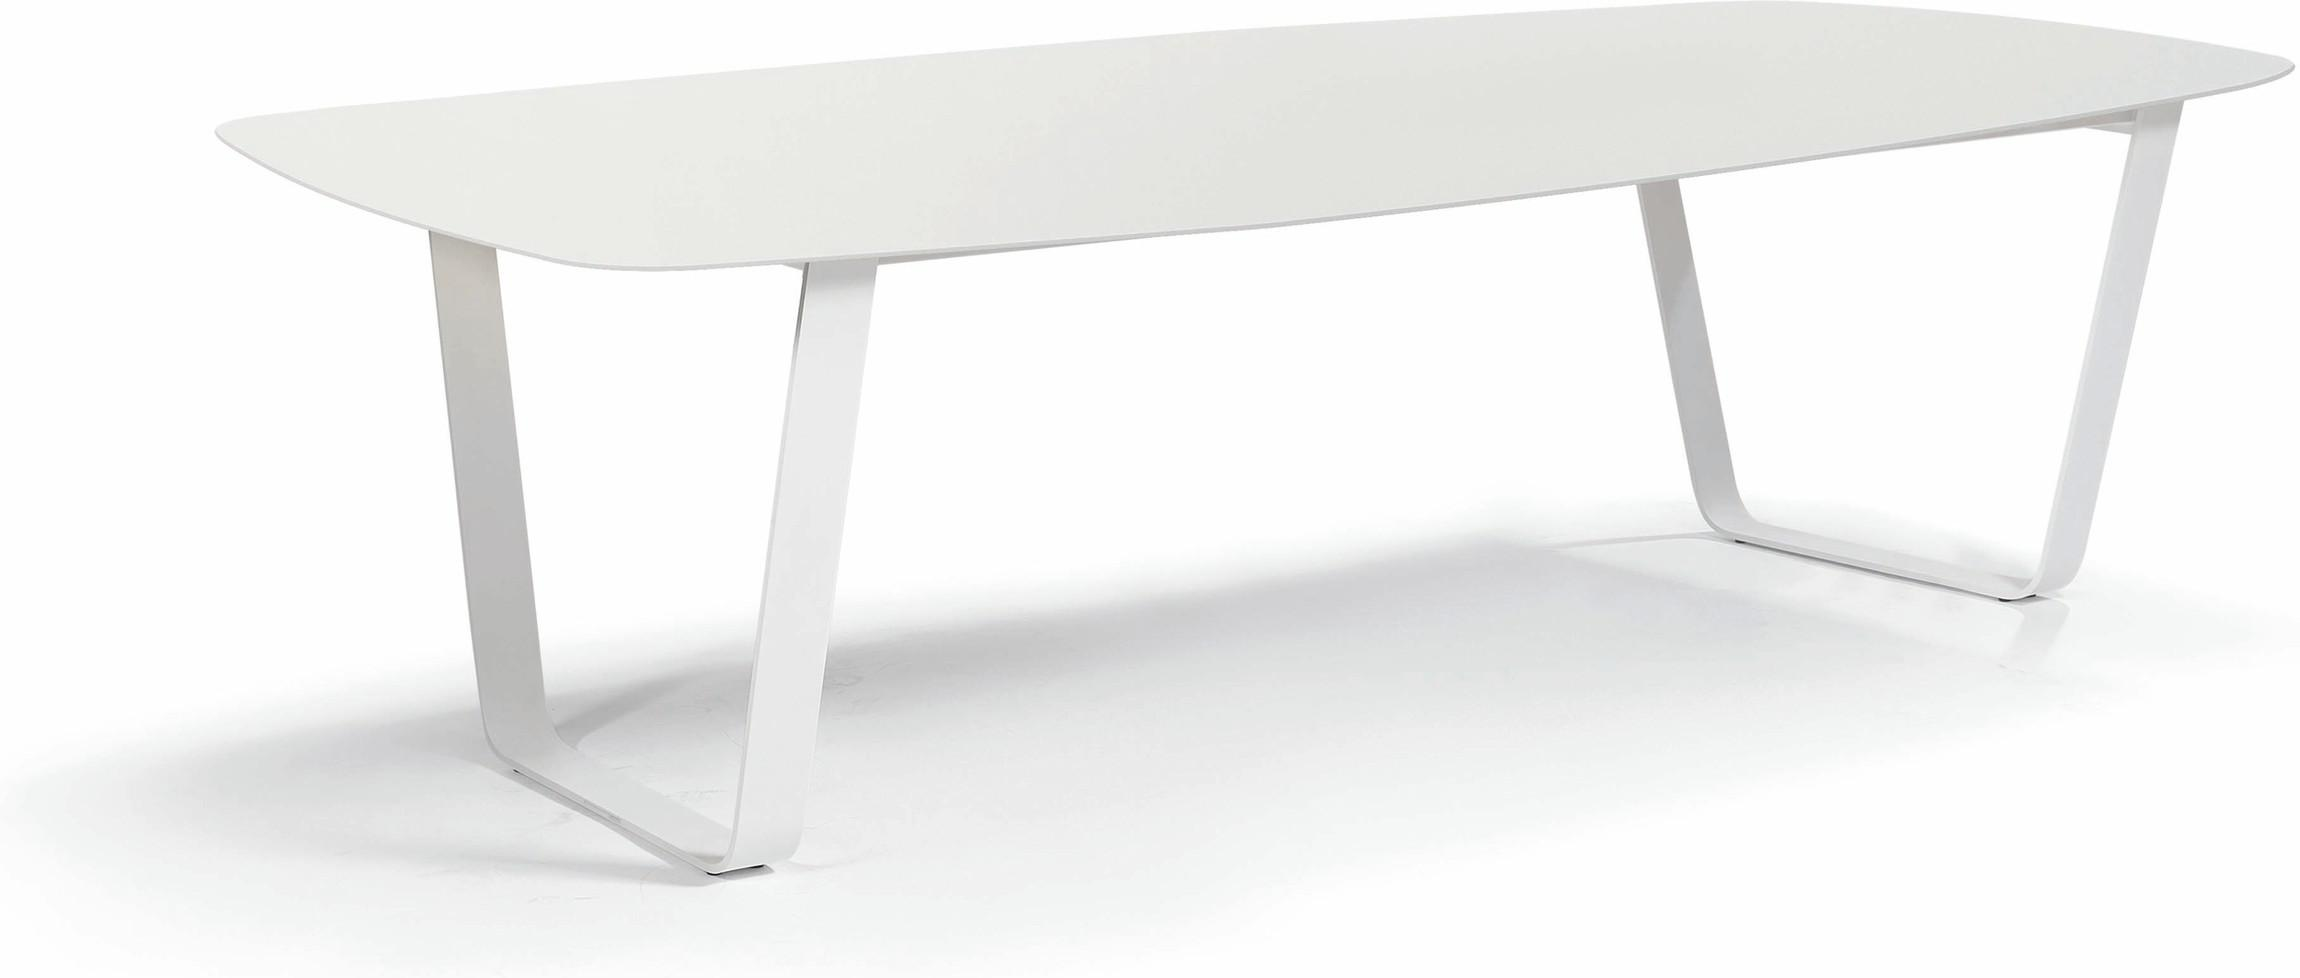 Eettafel Air - wit - CW 264